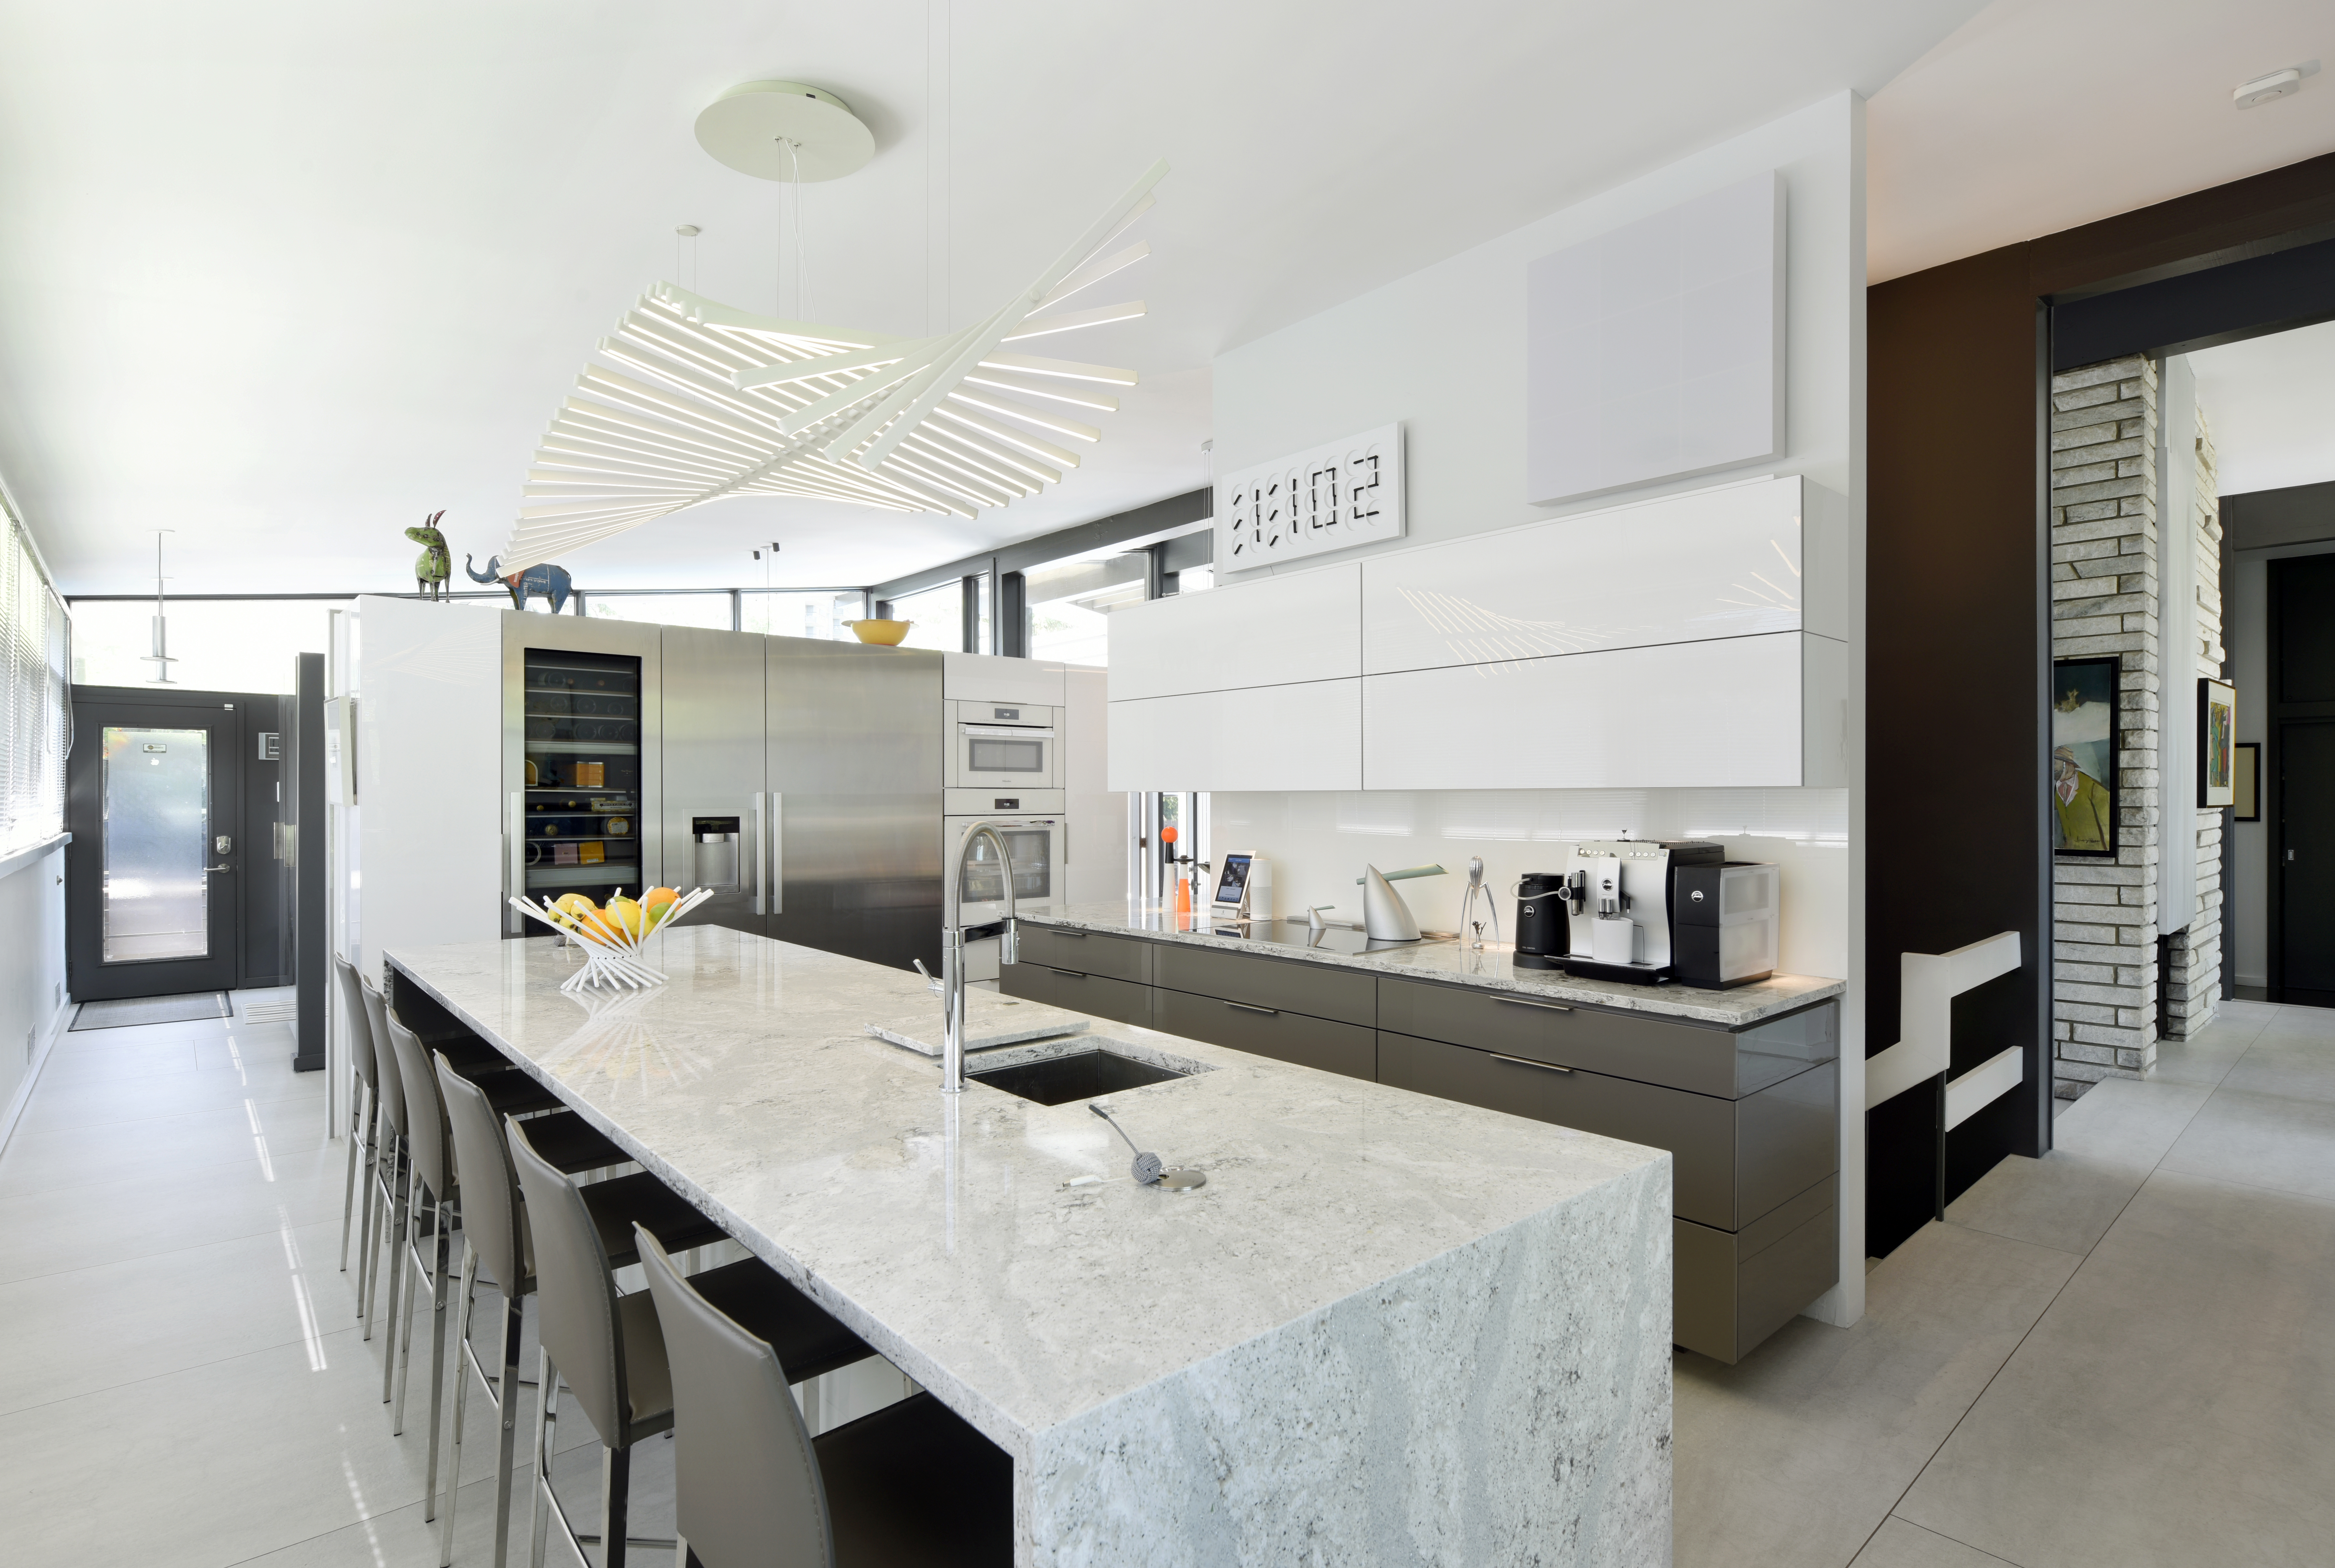 A row of modern bar stools in an upscale kitchen.